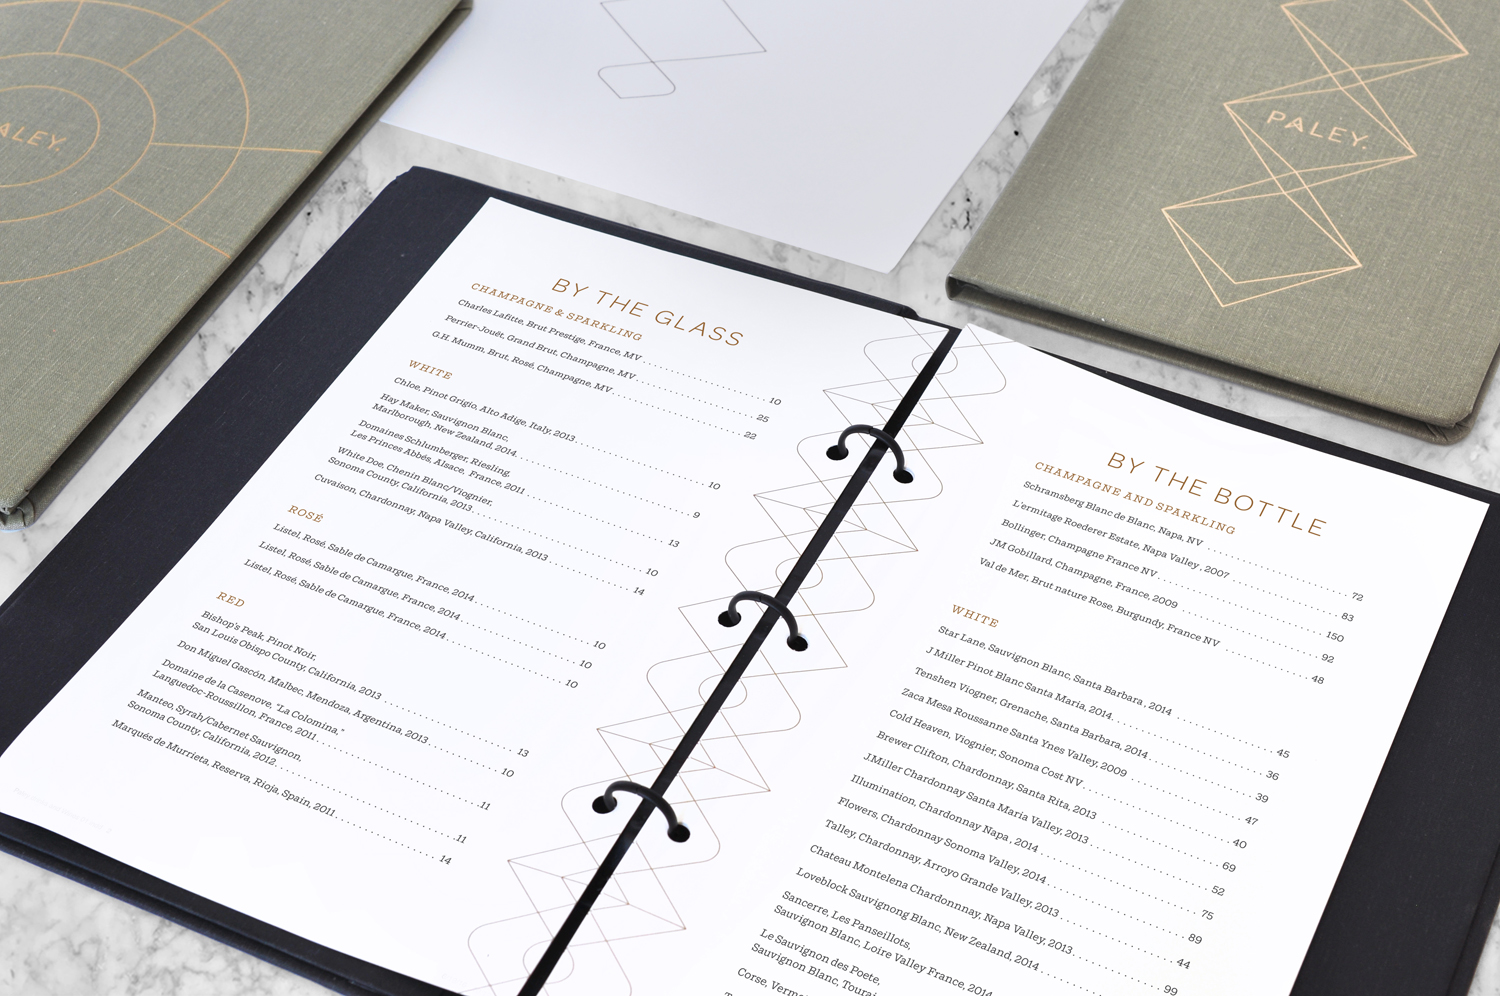 Brand identity, menus and wine lists with copper block foil detail for Los Angeles restaurant Paley designed by Mucca, United States